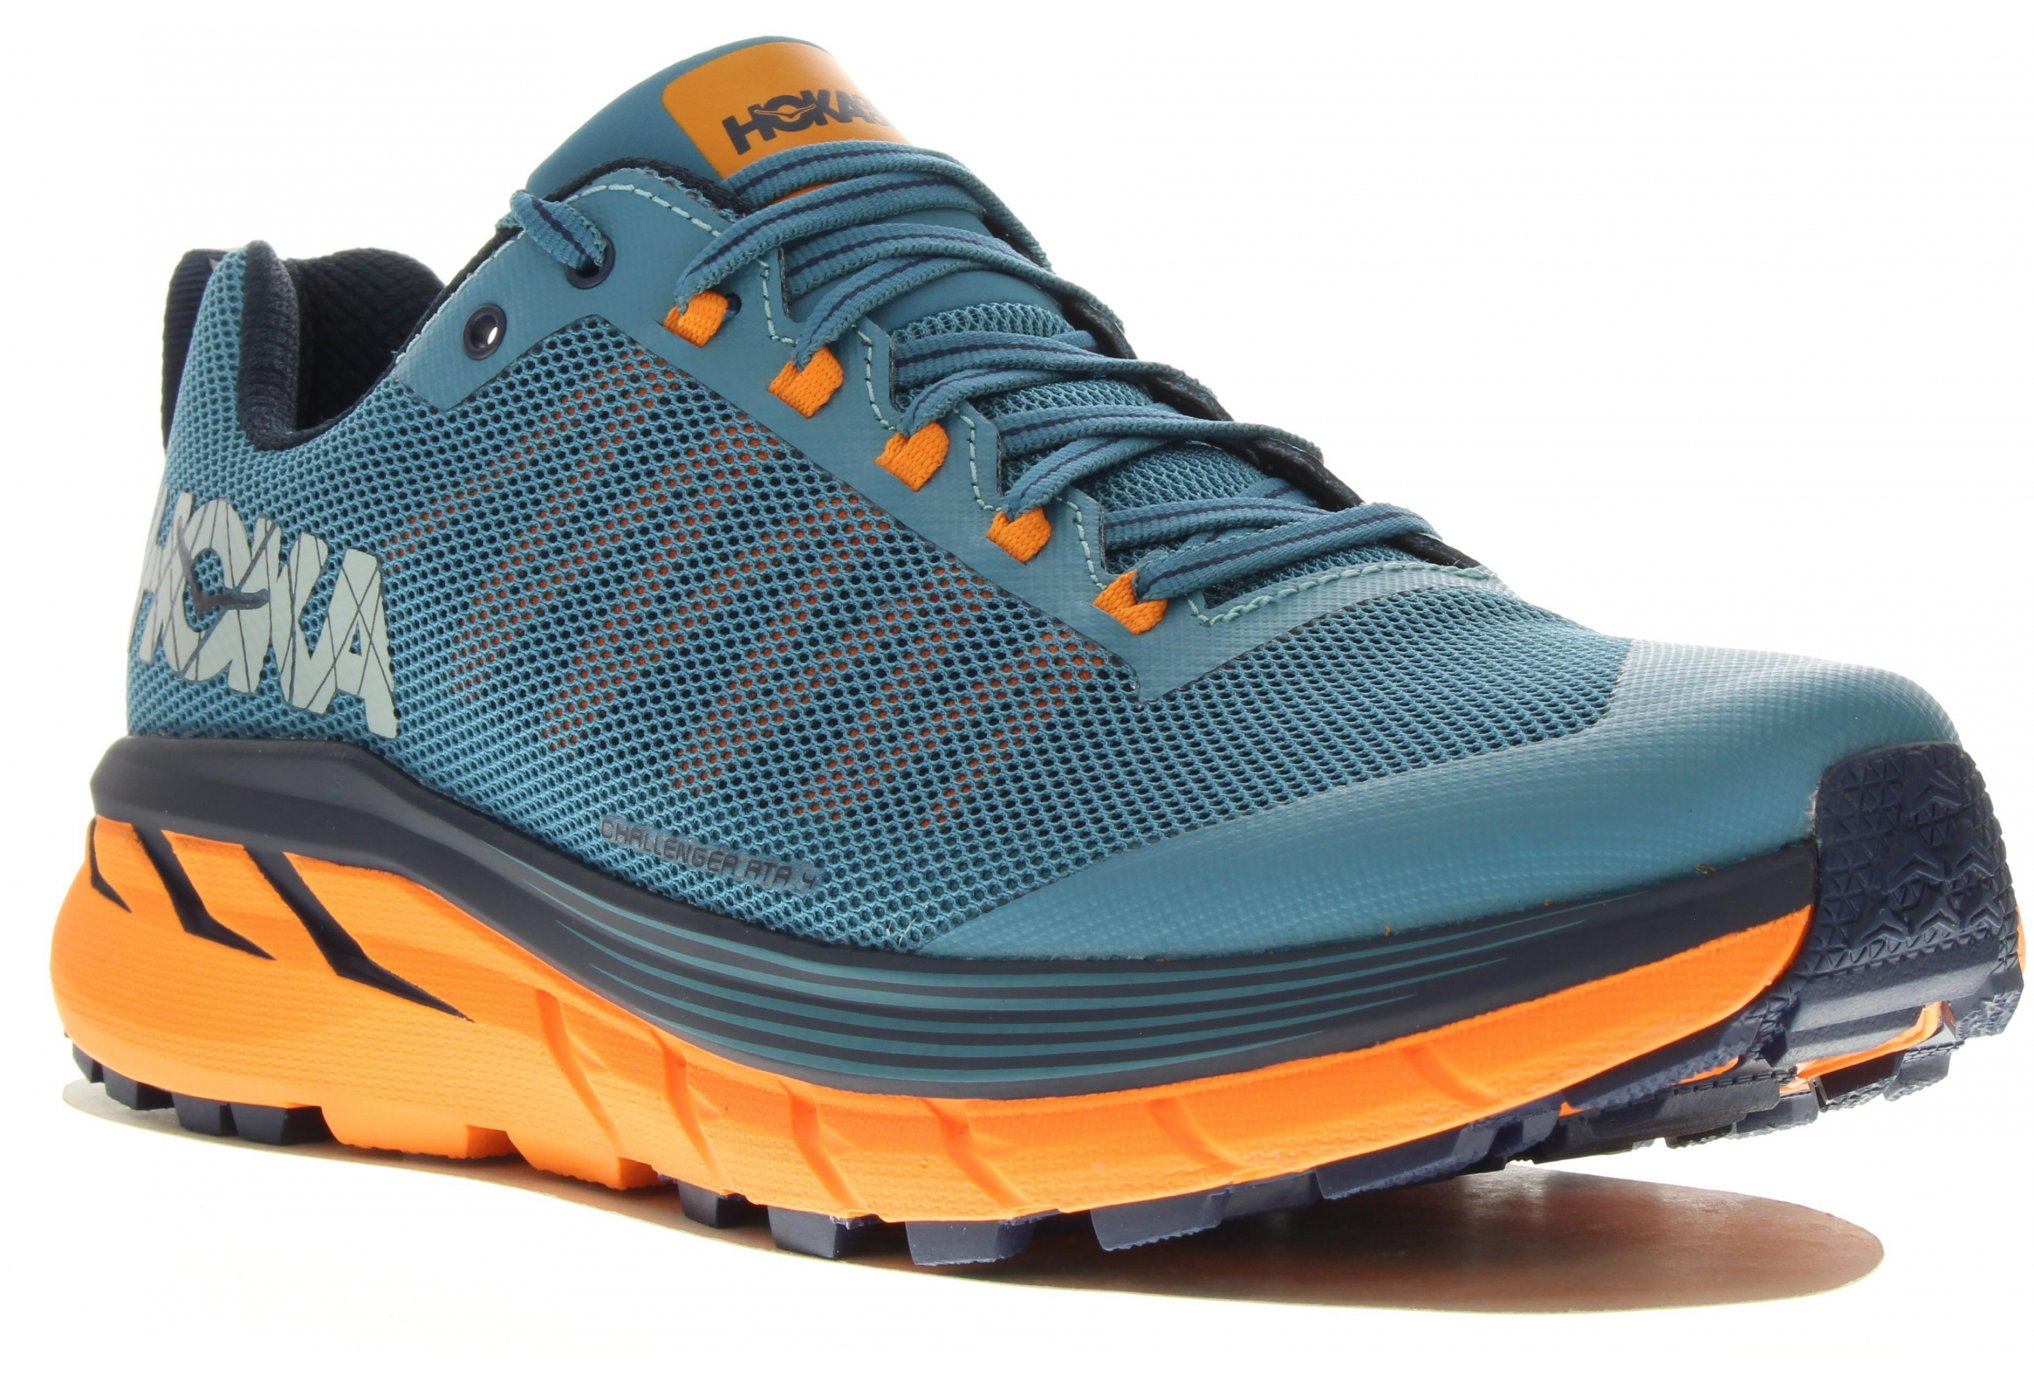 hoka-one-one-challenger-atr-4-m-chaussures-homme-248621-1-fz